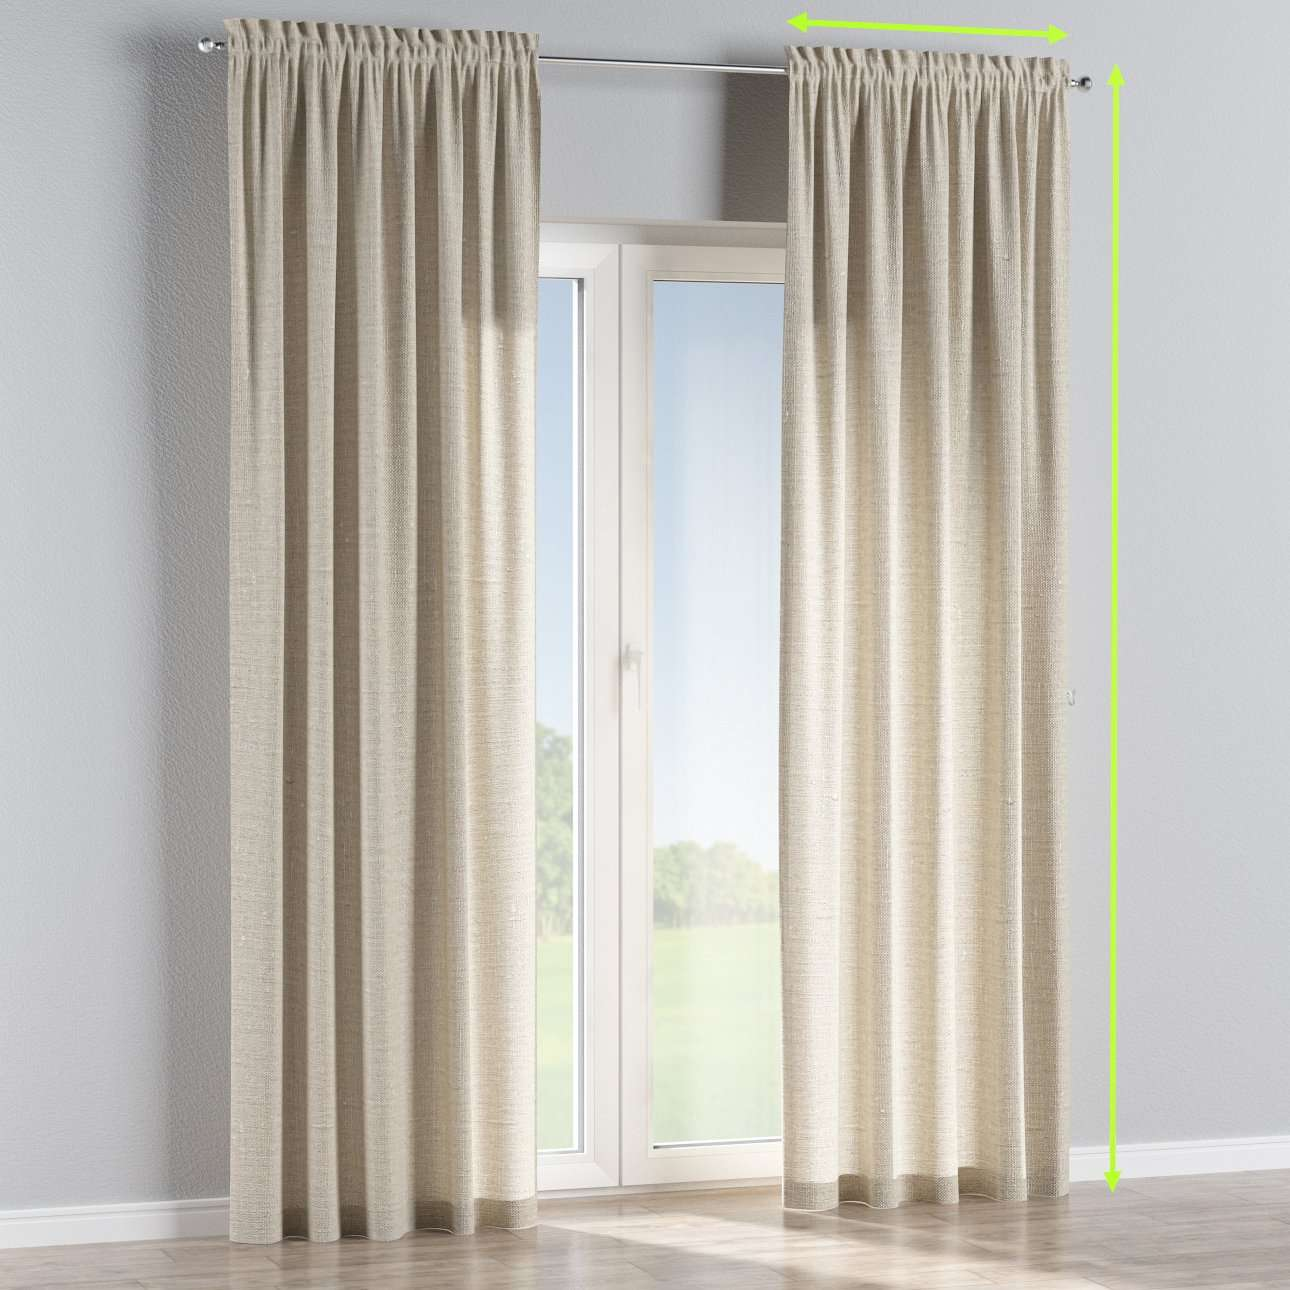 Slot and frill lined curtains in collection Linen, fabric: 392-05